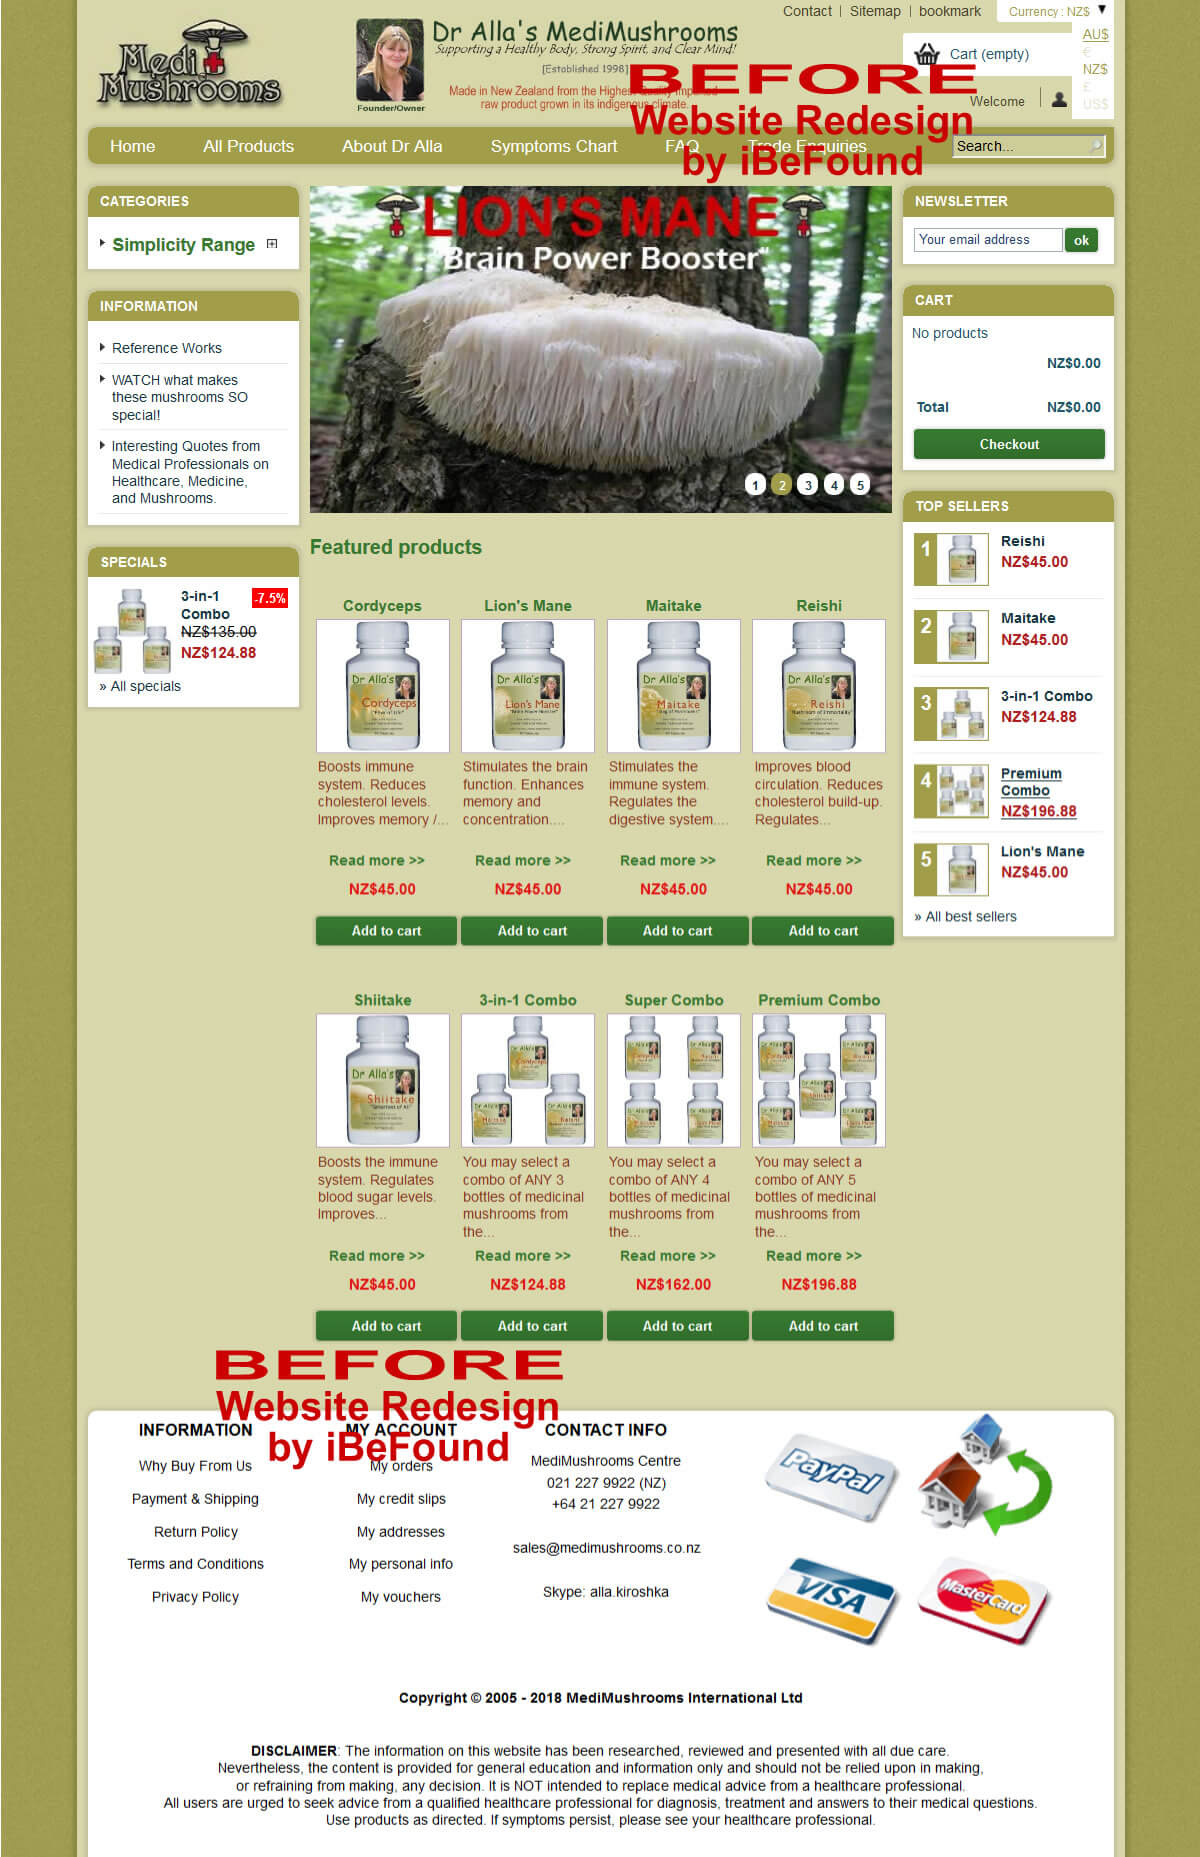 Homepage Of MediMushrooms International Ltd Before Website Redesign By IBeFound Digital Marketing Division